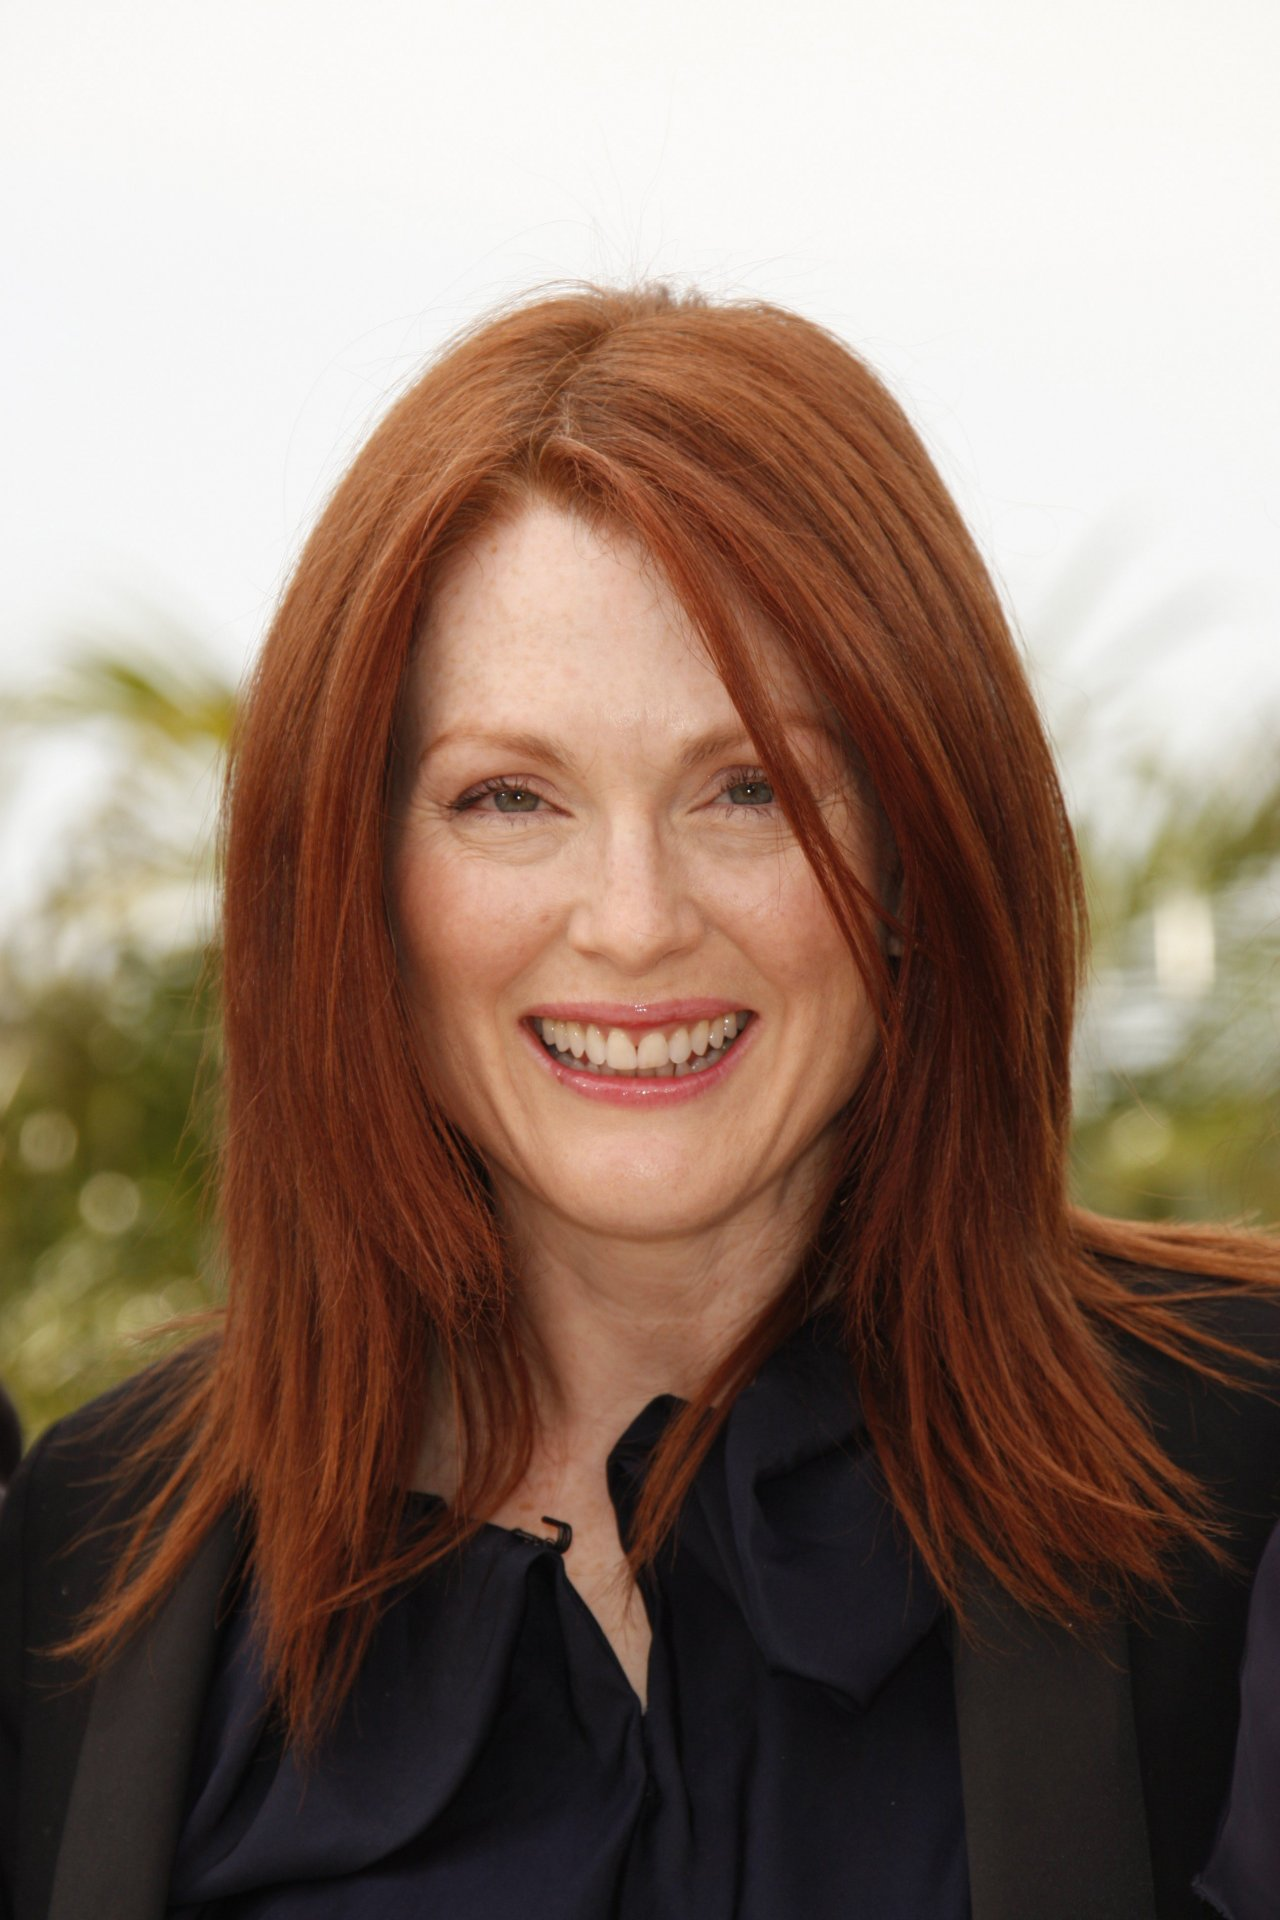 Julianne Moore - Wallpaper Colection